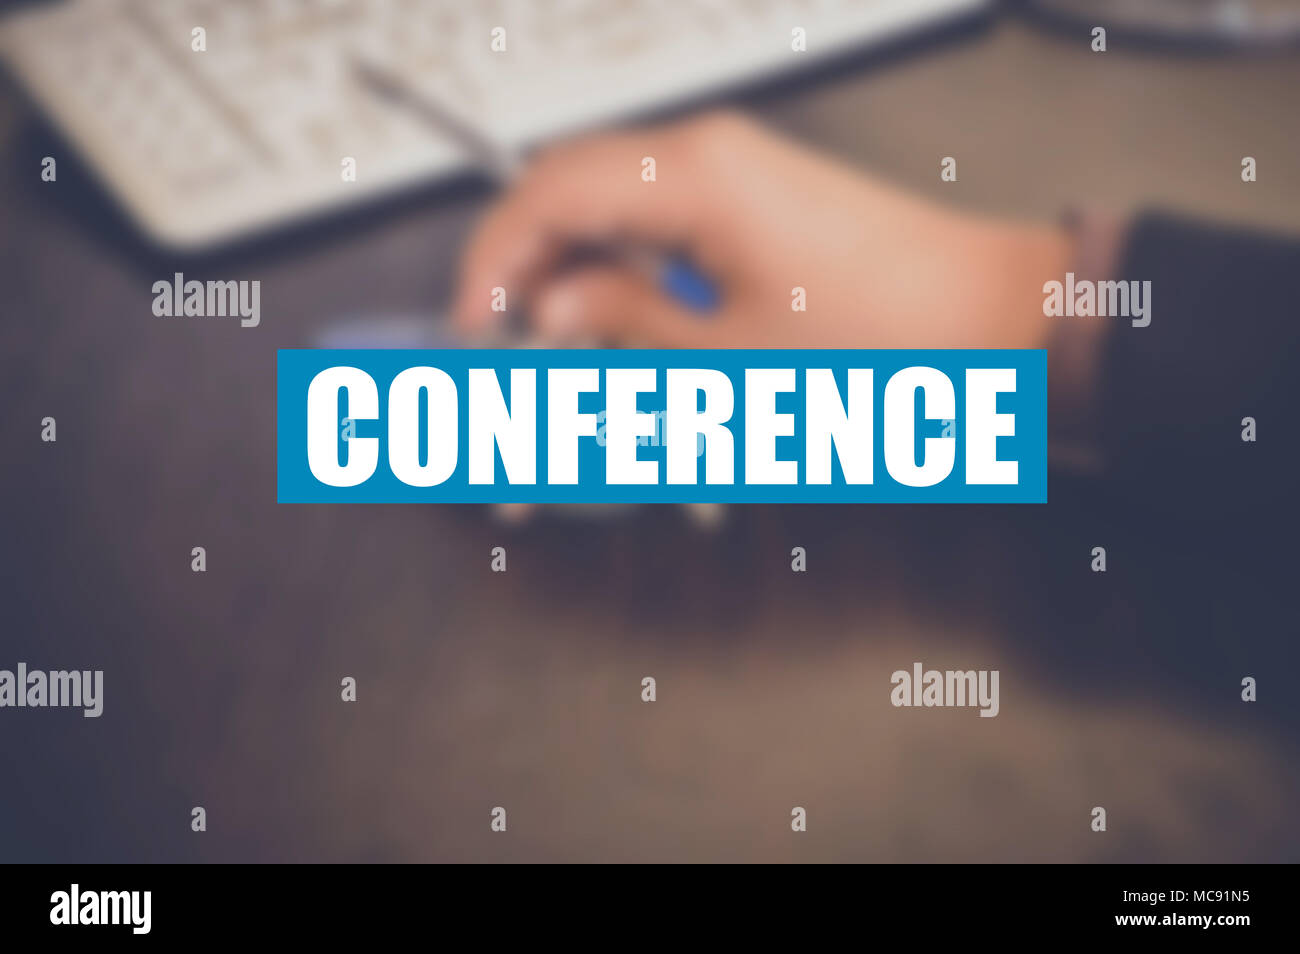 conference word with blurring background - Stock Image